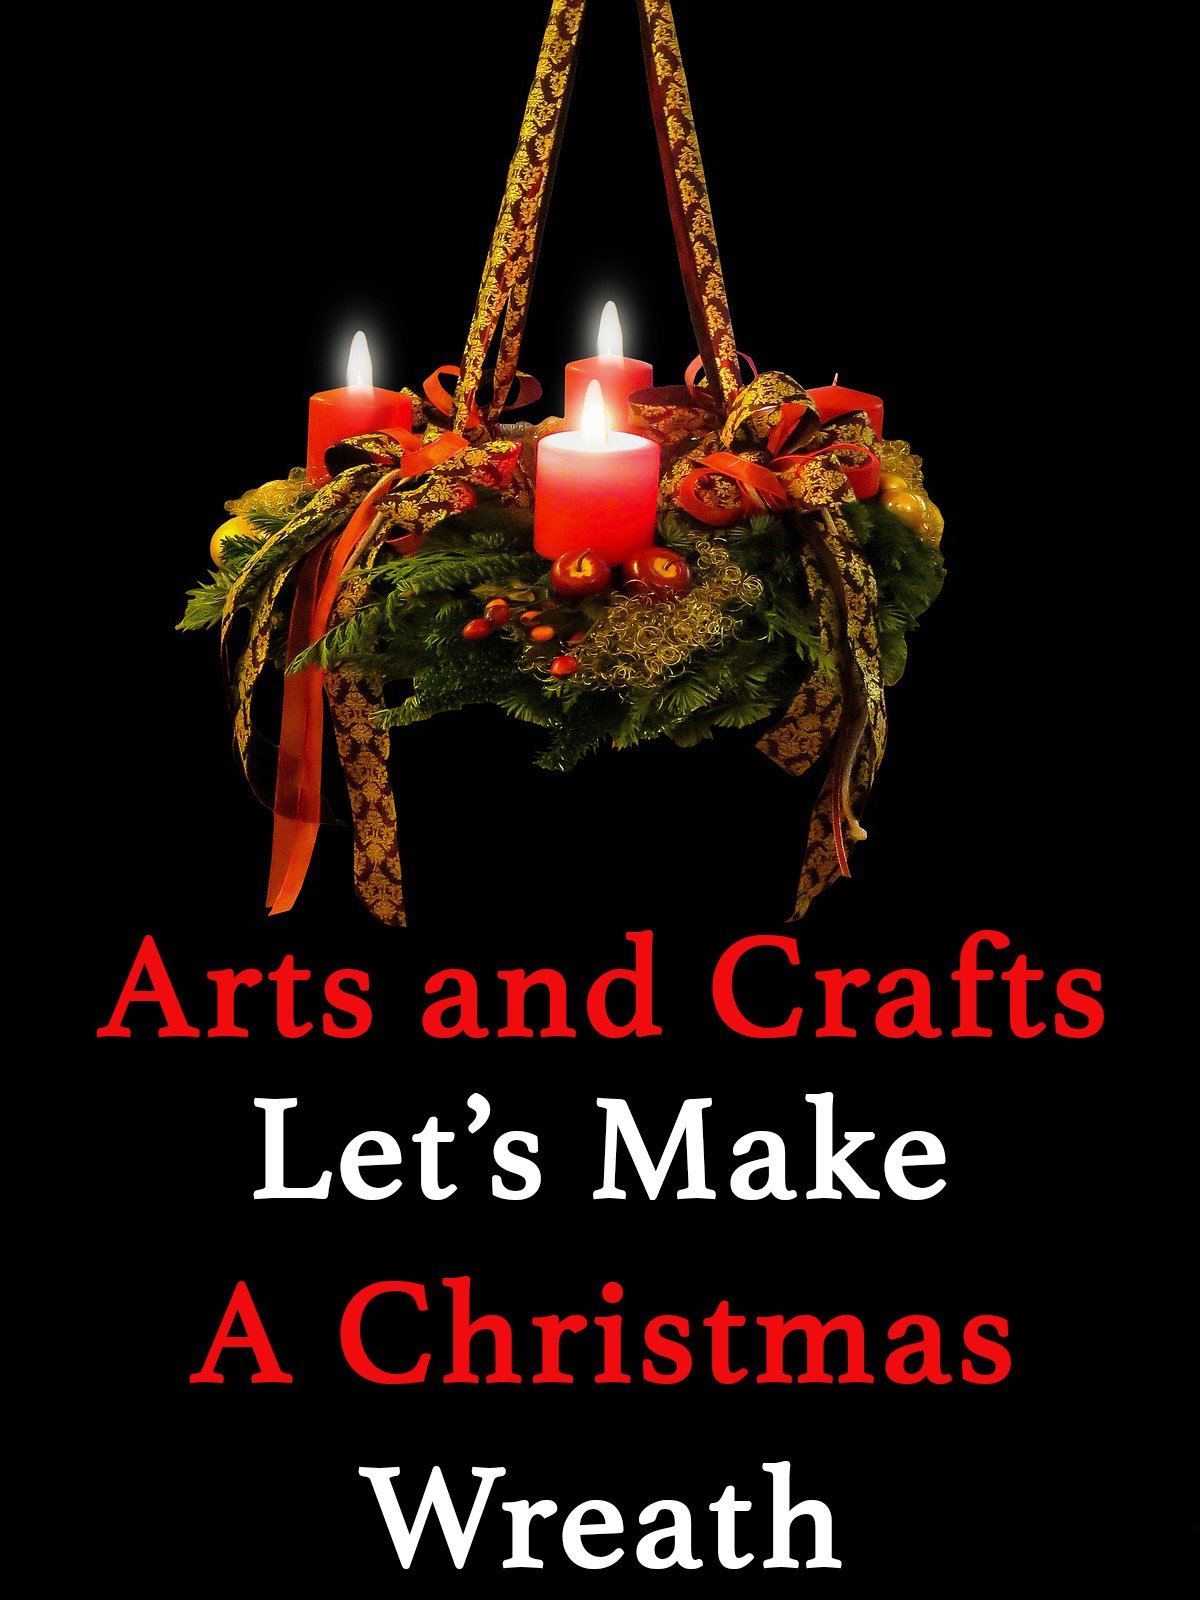 Arts and Crafts Let's Make A Christmas Wreath